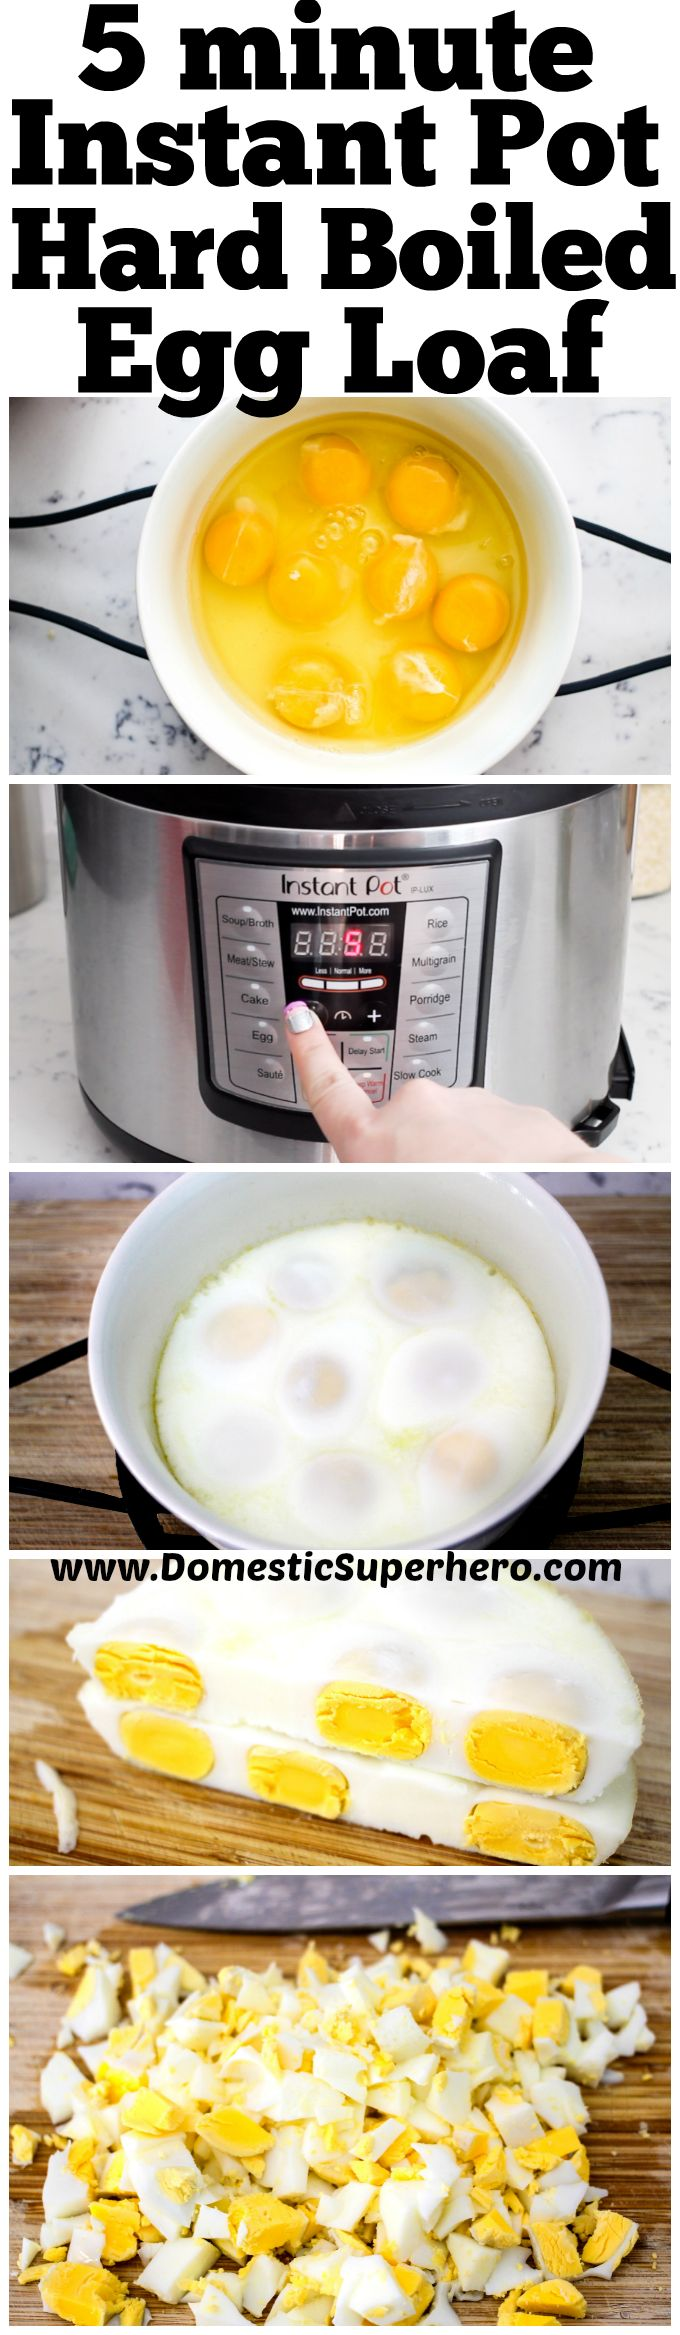 In five minutes make a whole bunch of hardboiled eggs which are perfect for egg salad! No peeling or ice bath for this Instant Pot Hard Boiled Egg Loaf!